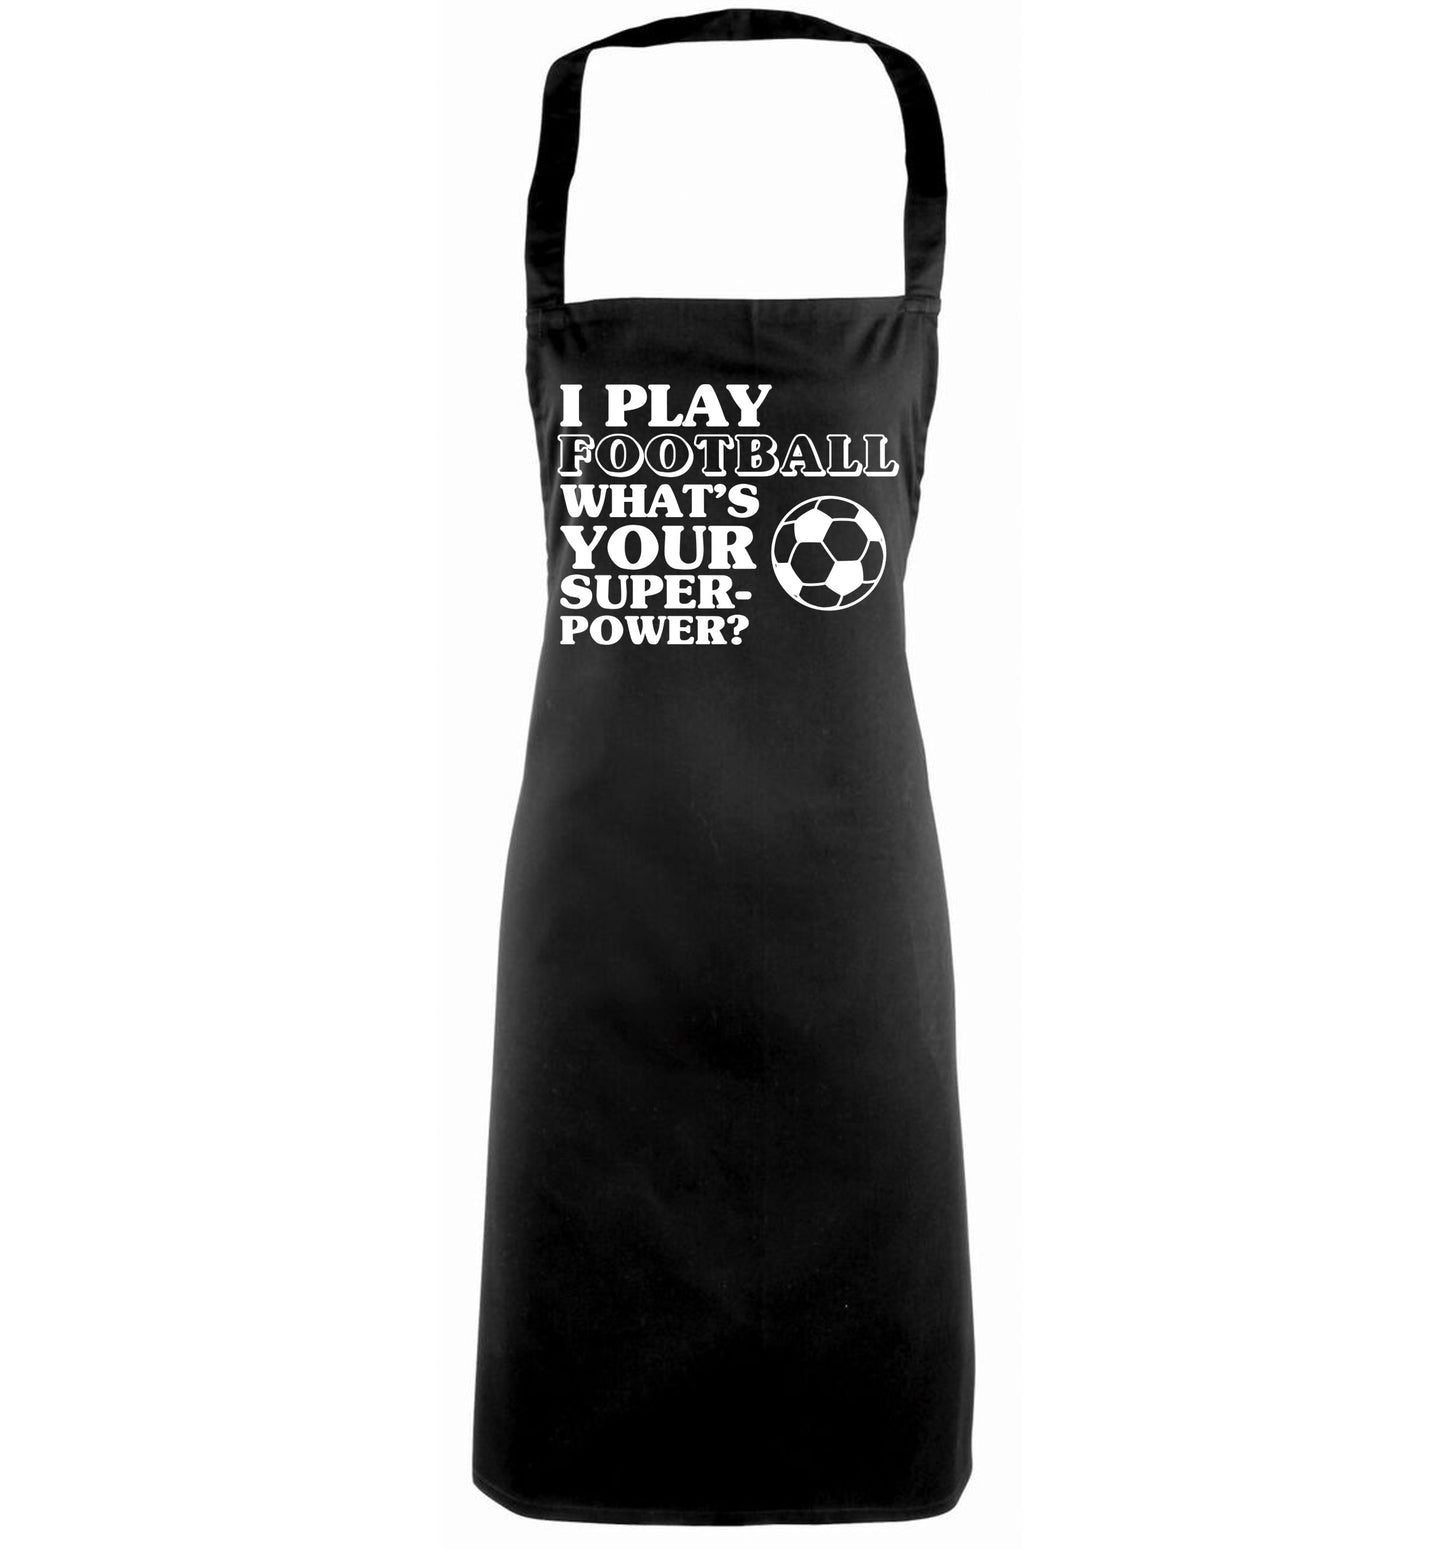 I play football what's your superpower? black apron